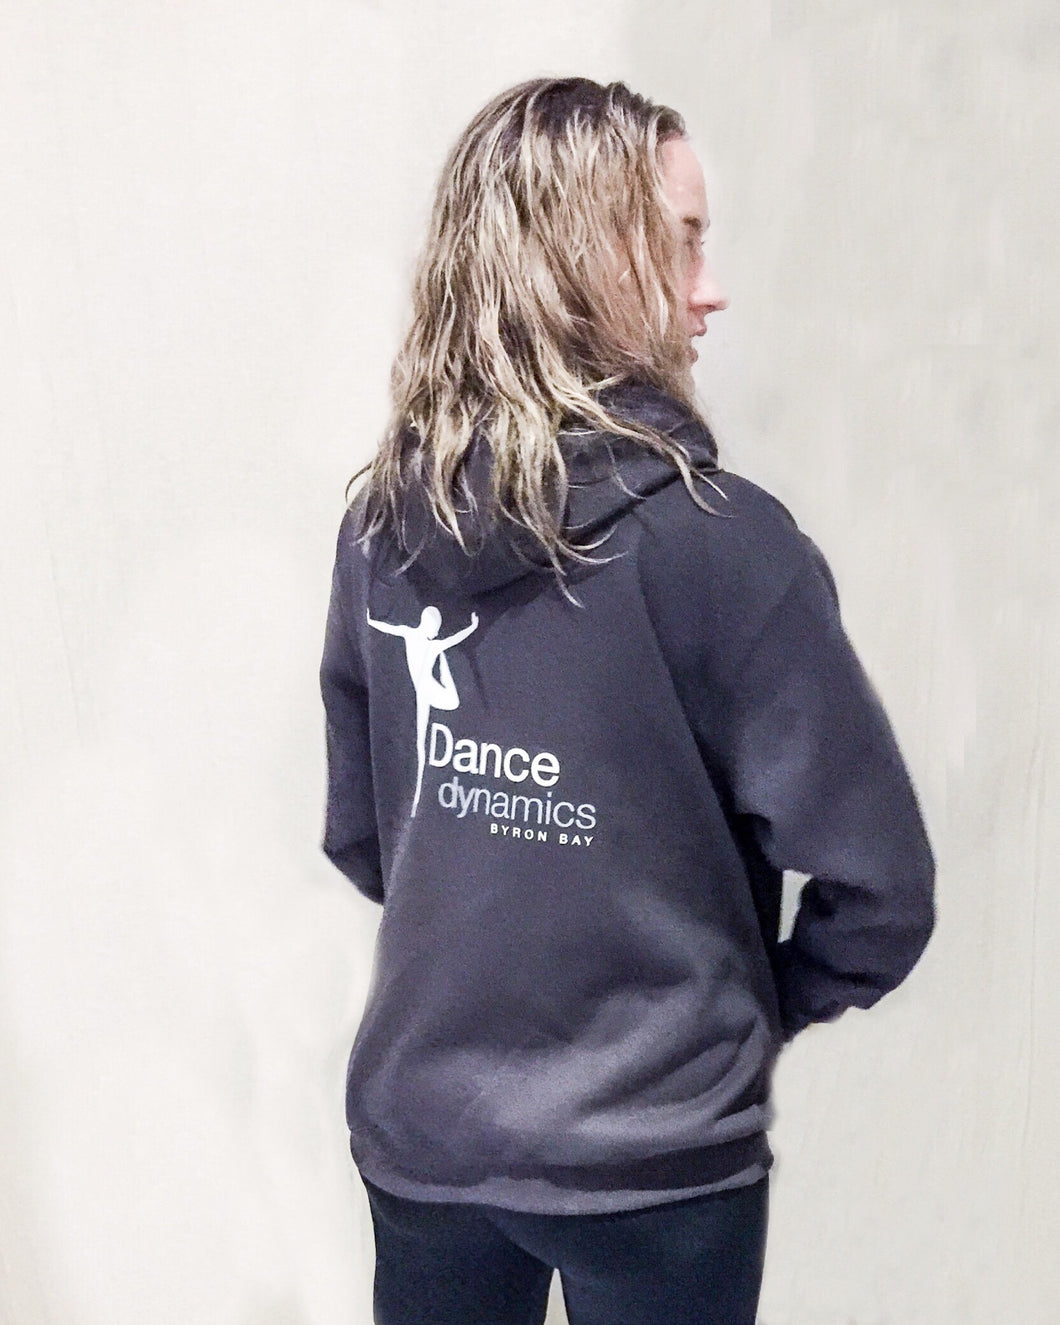 Woman with blonde messy hair standing back on showing Dance Dynamics logo on the back of a charcoal hooded sweater